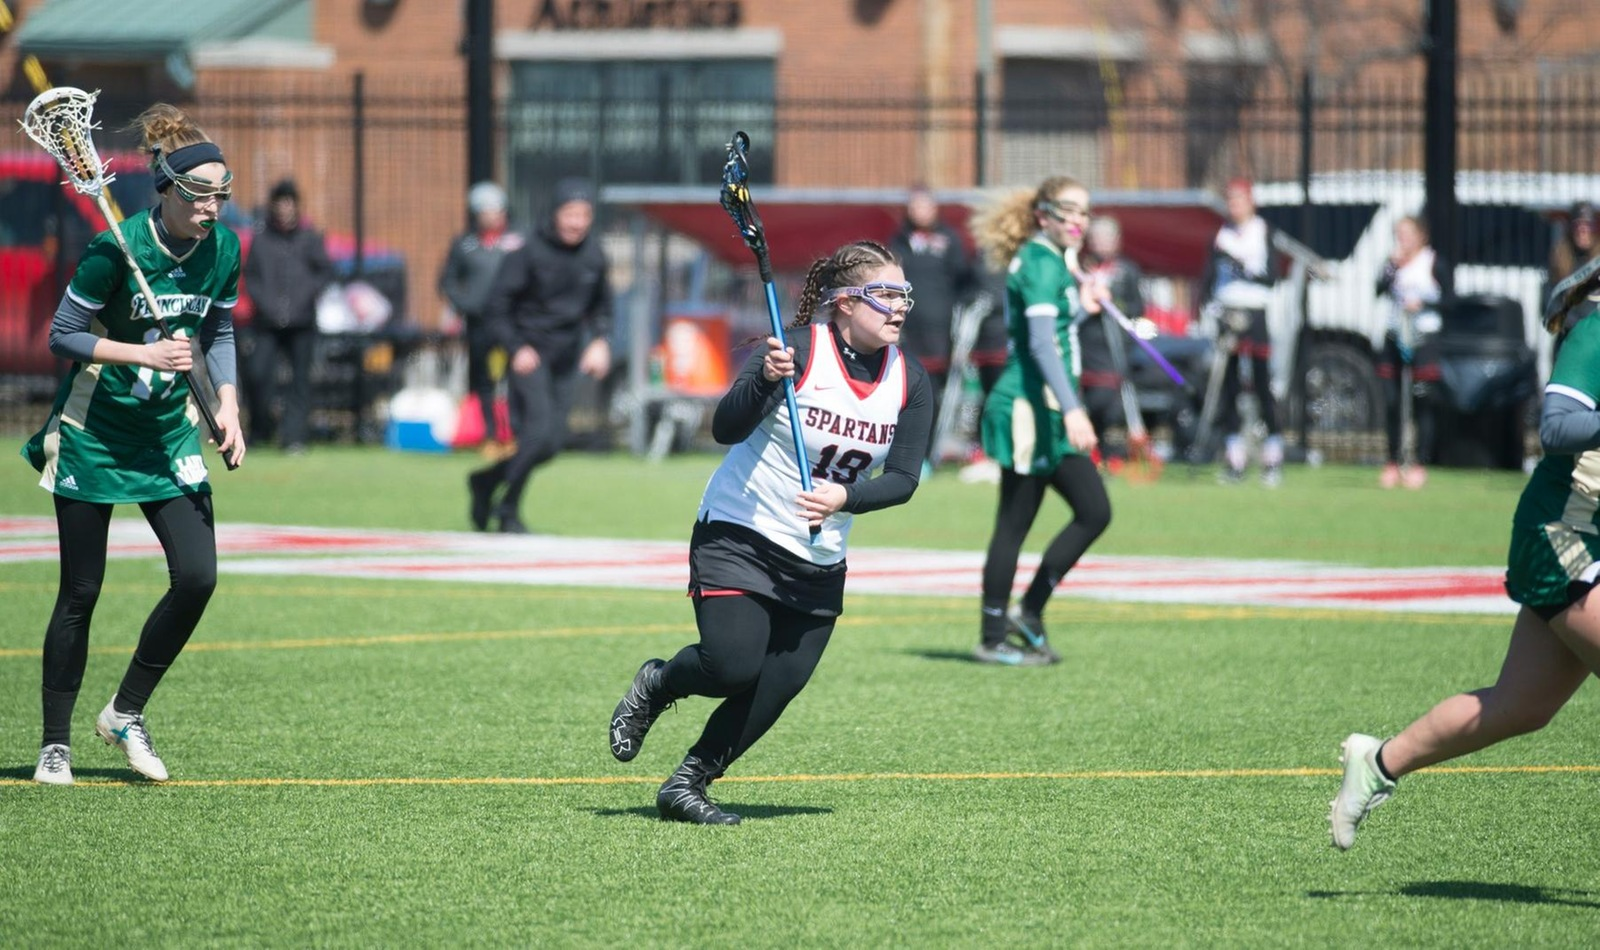 Comeback Falls Short as Women's Lacrosse Loses to Wells